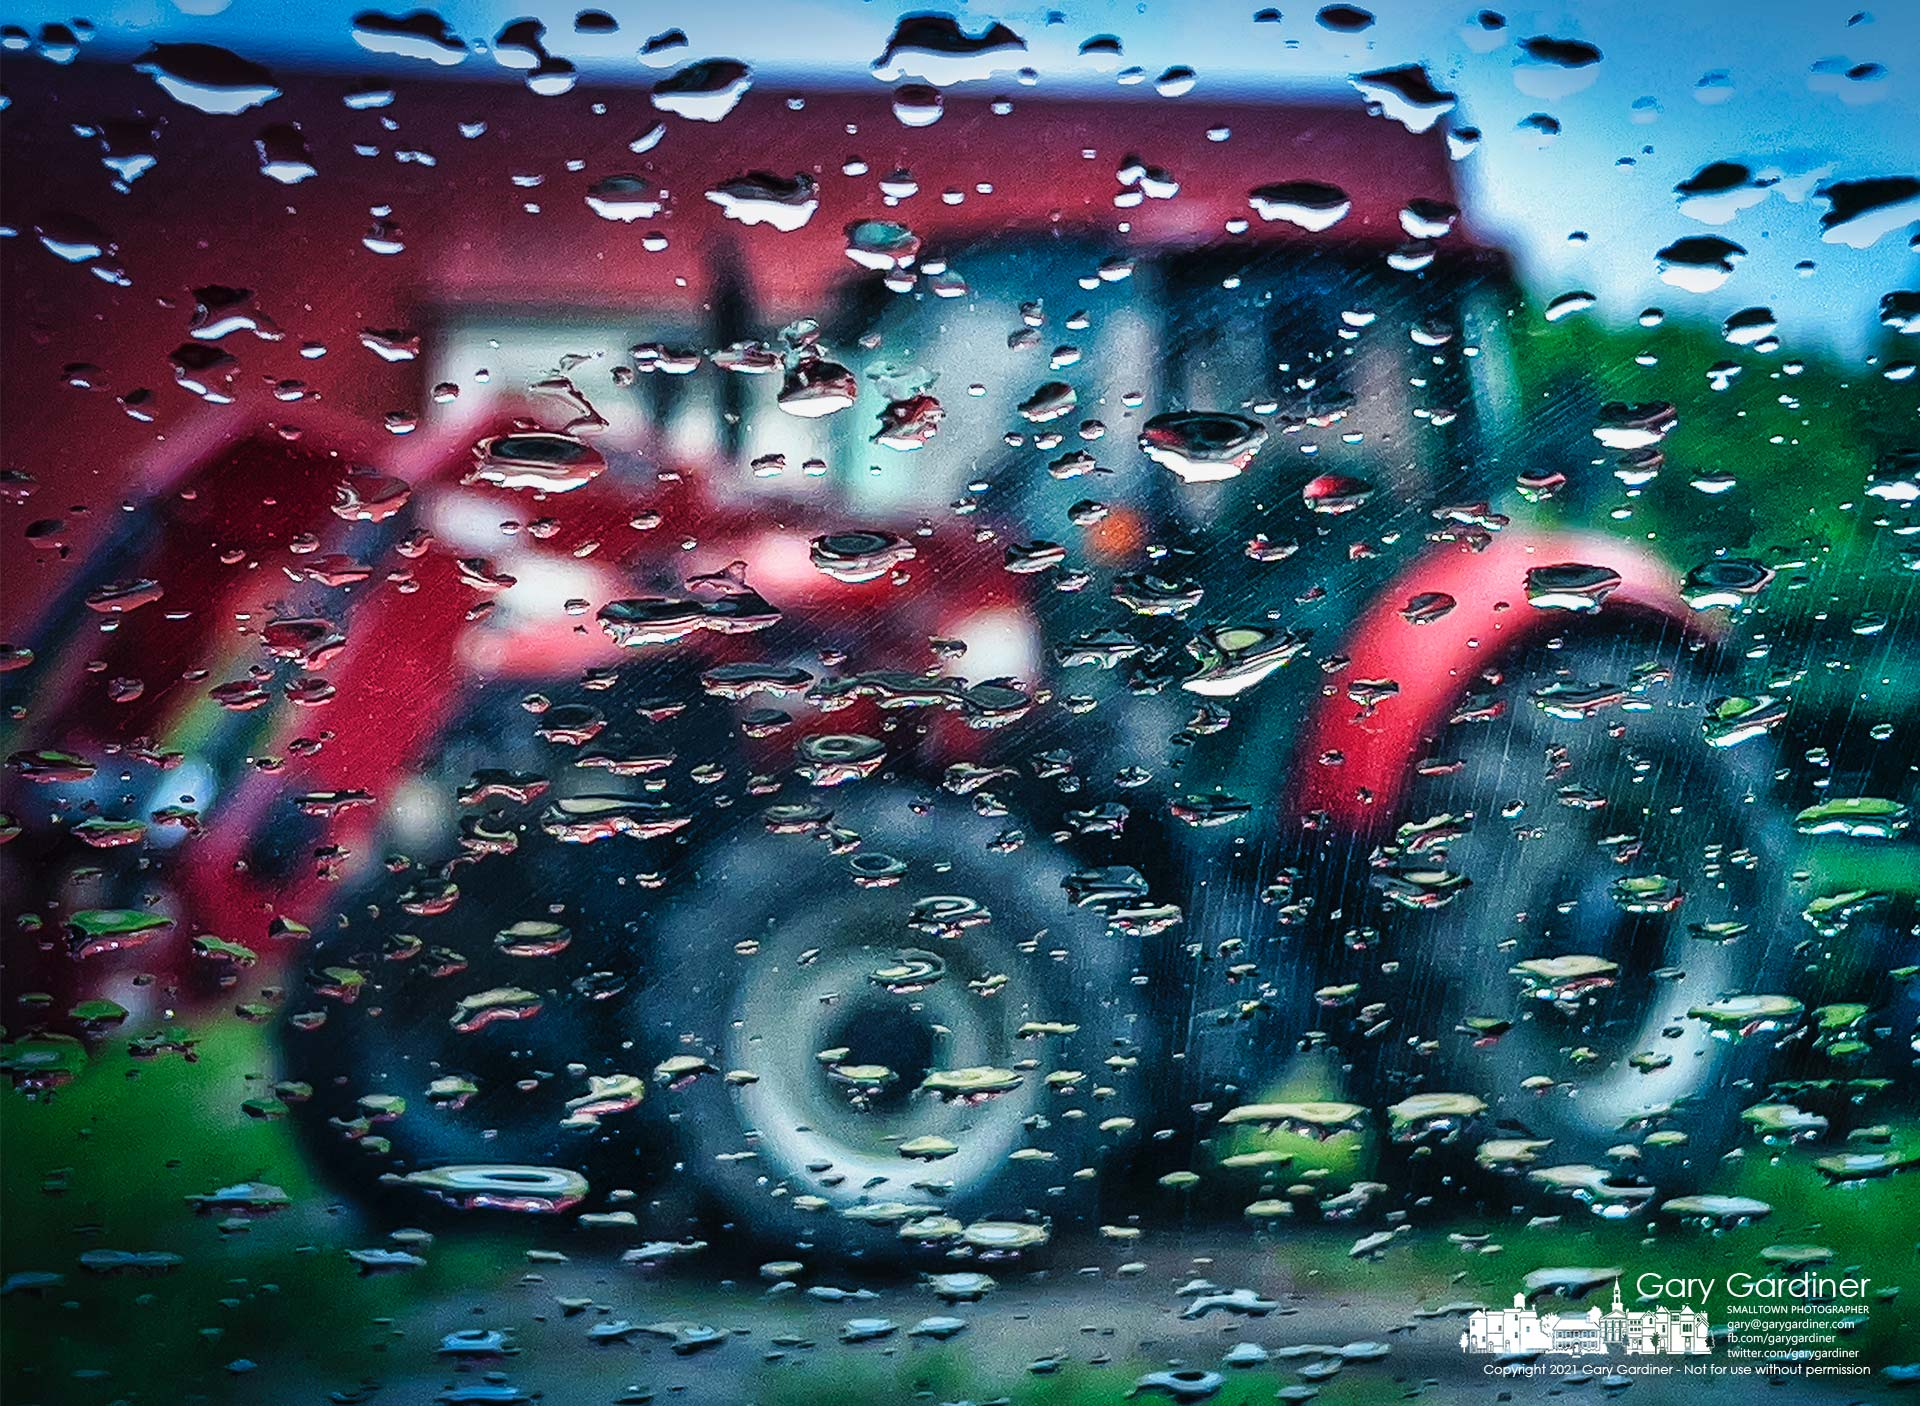 Raindrops on a car windshield mark the difficulty for plans to plow and replant the fields at the Braun Farm on a very wet Monday. My Final Photo for June 7, 2021.